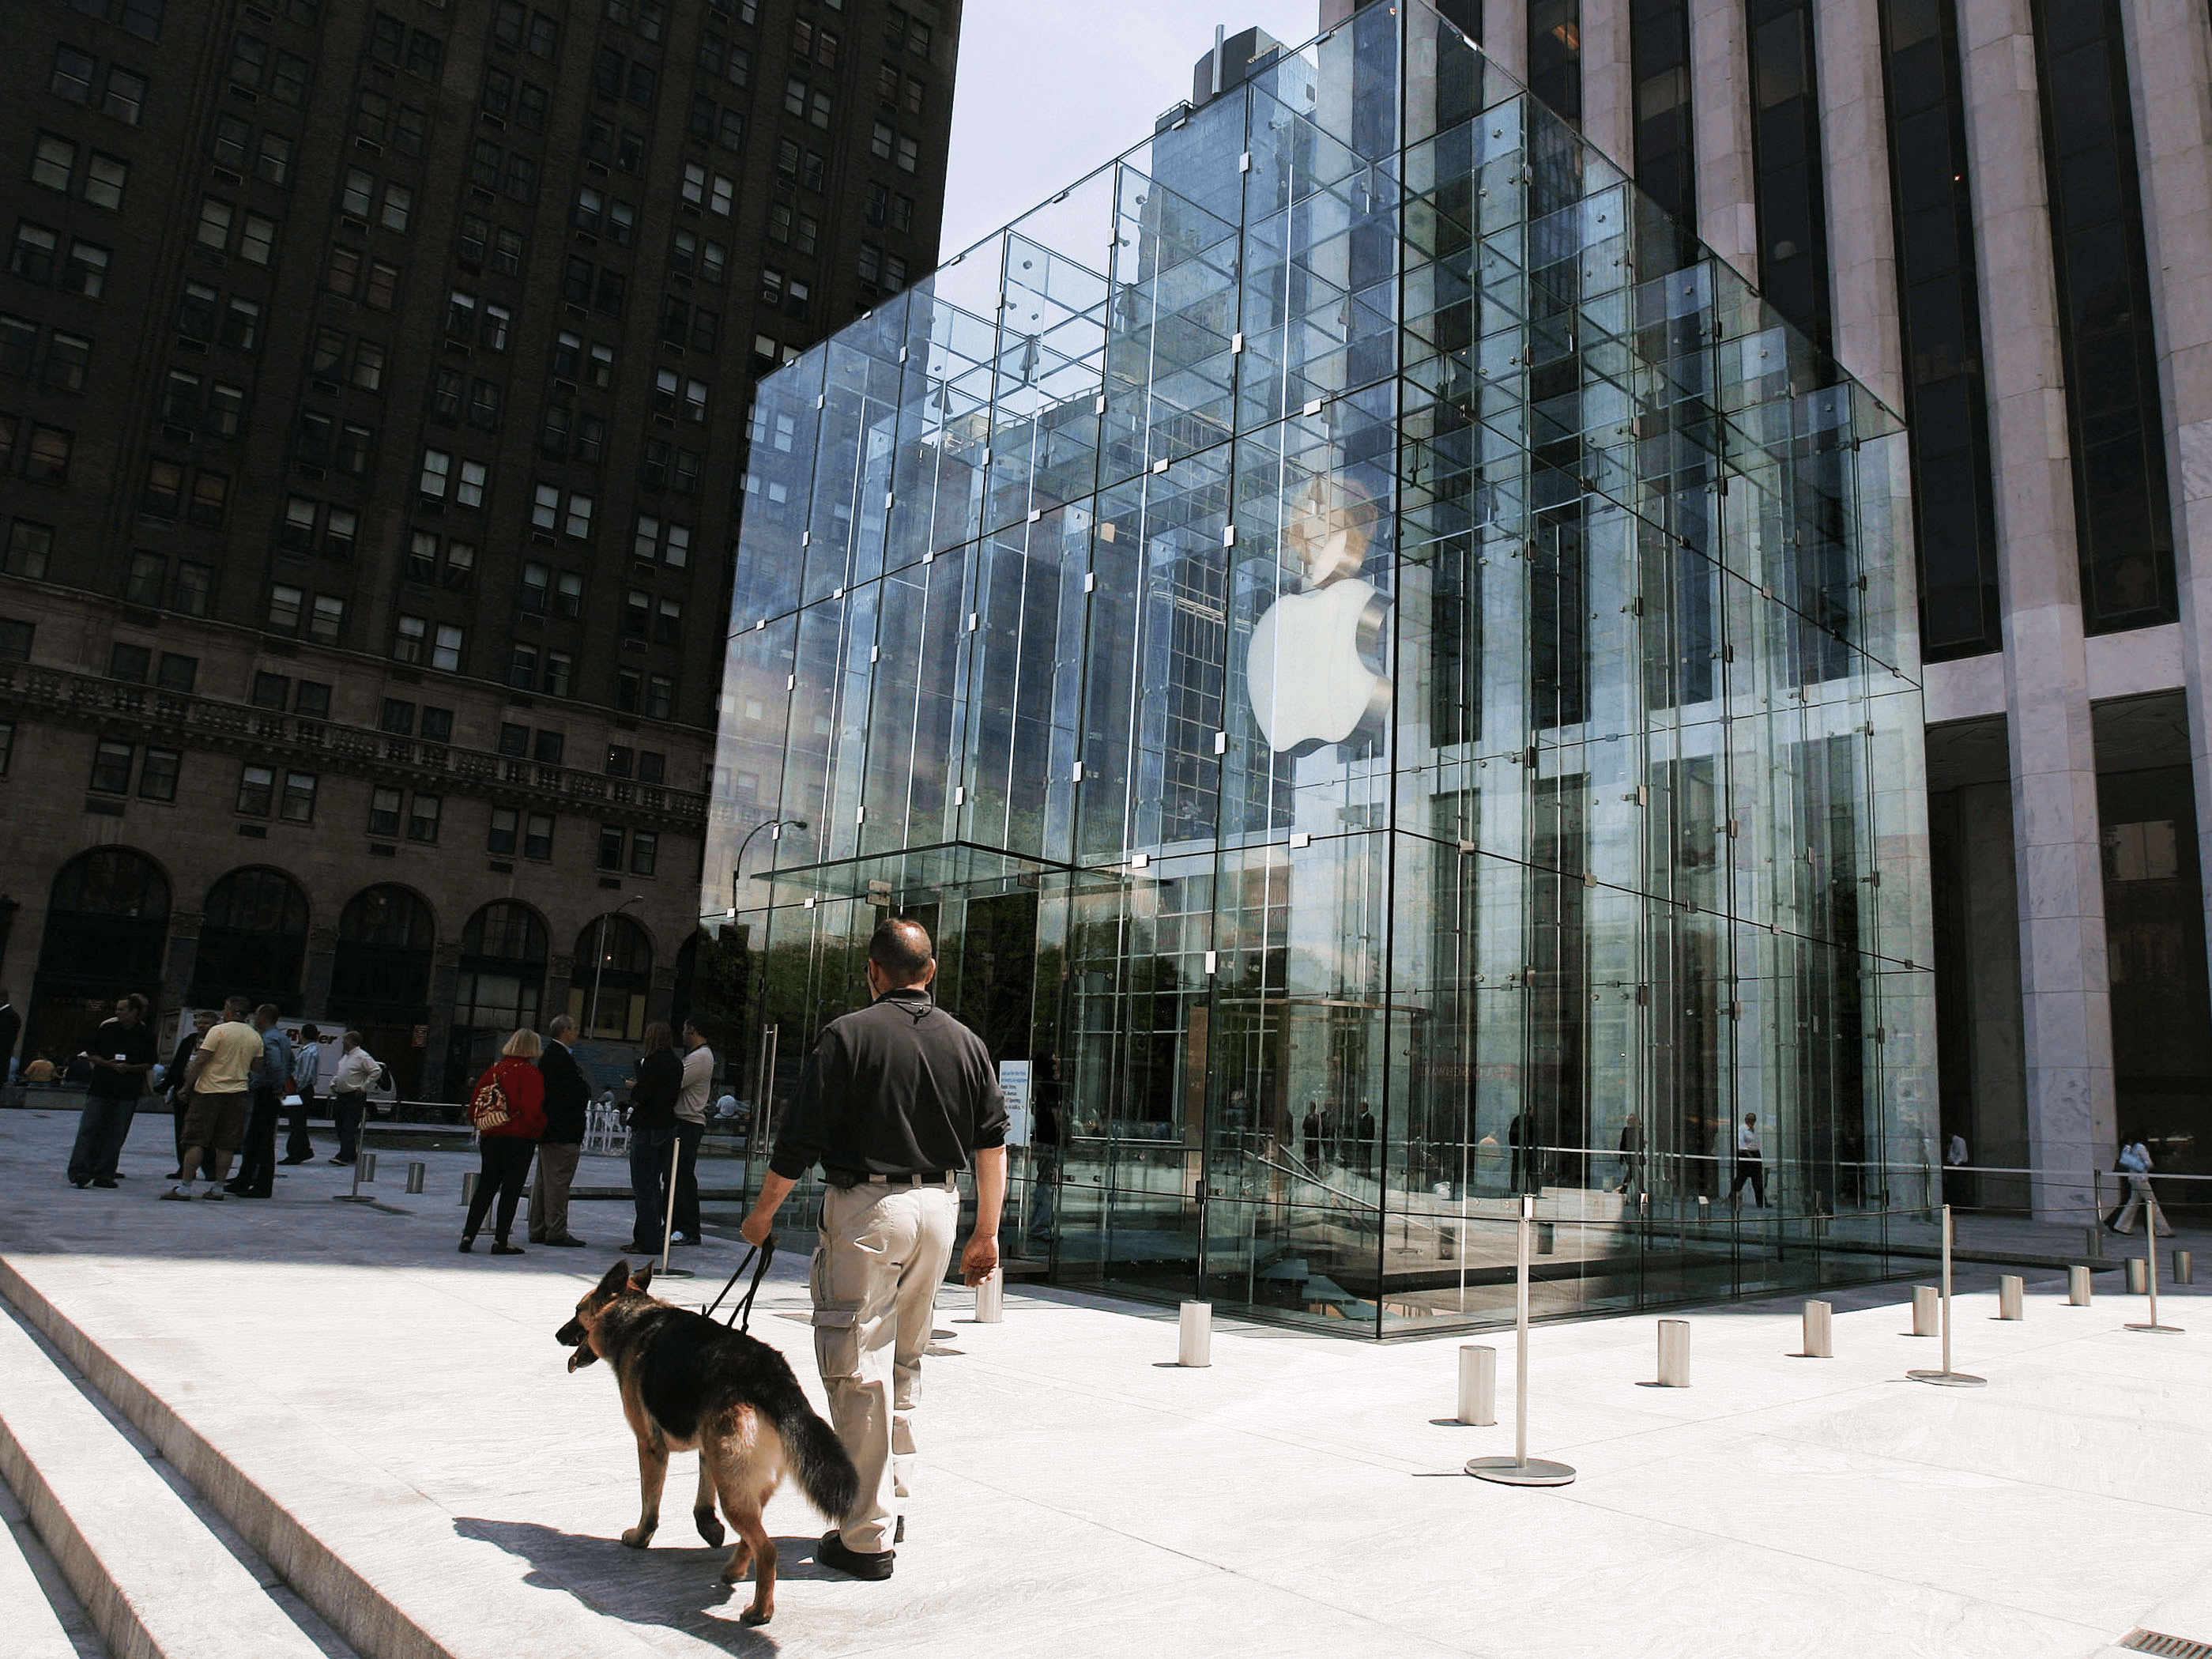 Changes are coming to Apple's retail stores.